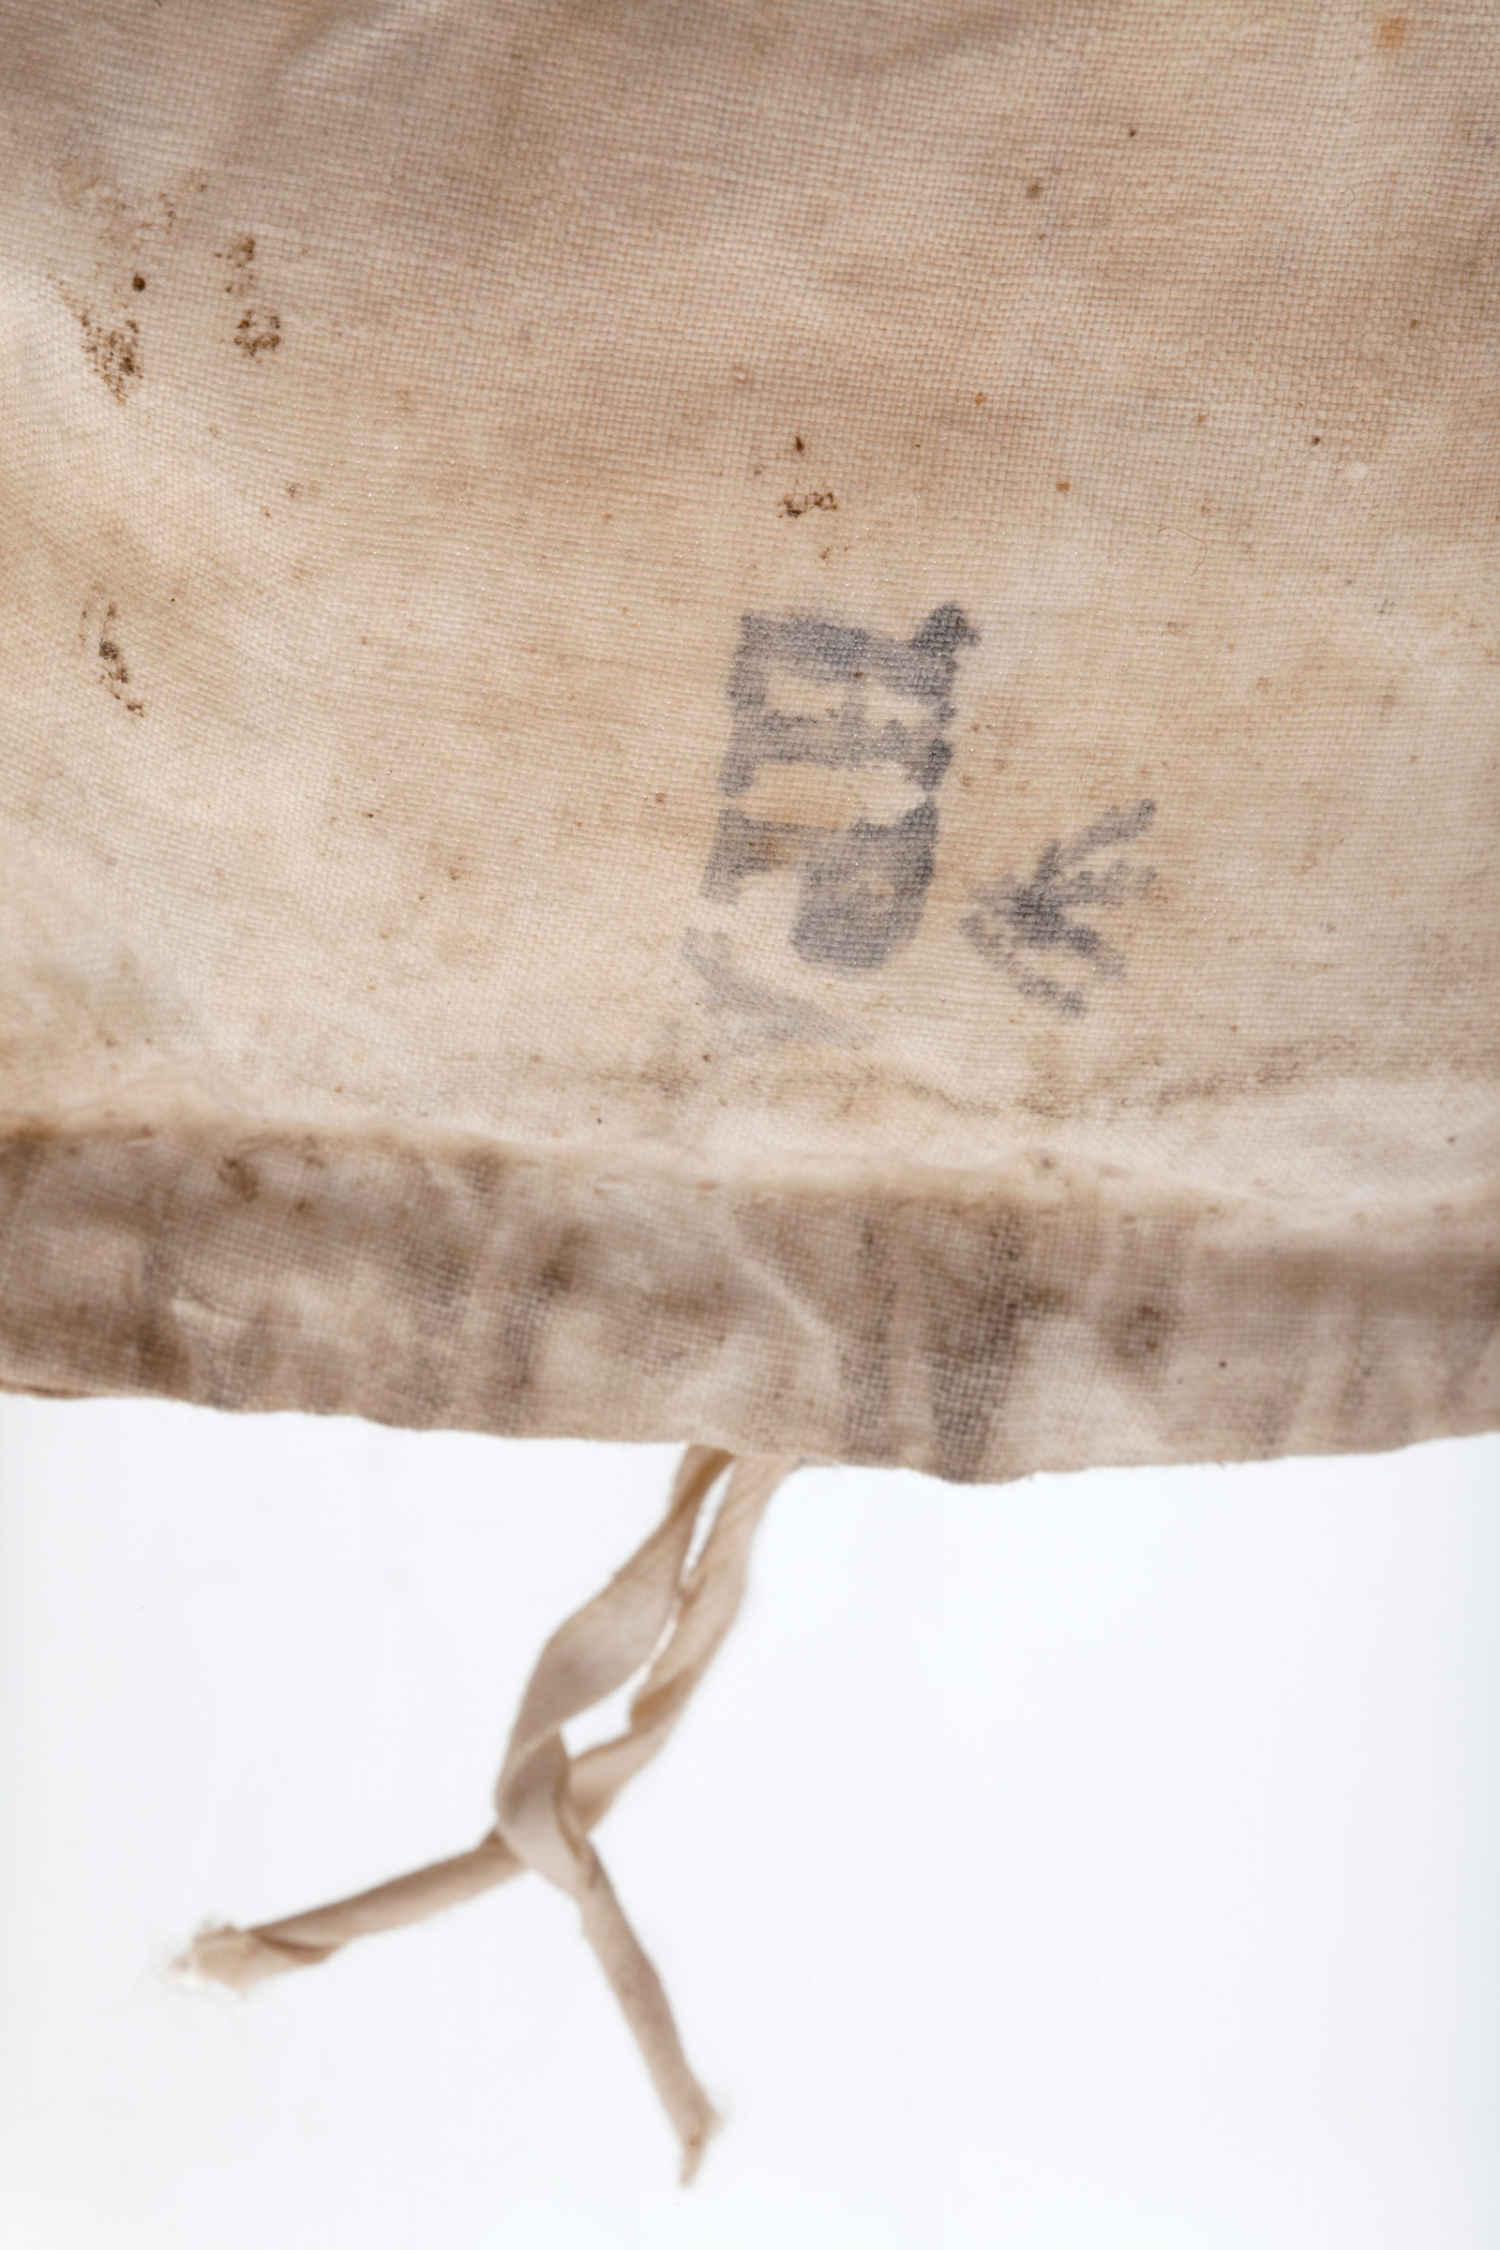 Asylum bonnet from Hyde Park Barracks Museum archaeology collection (detail)